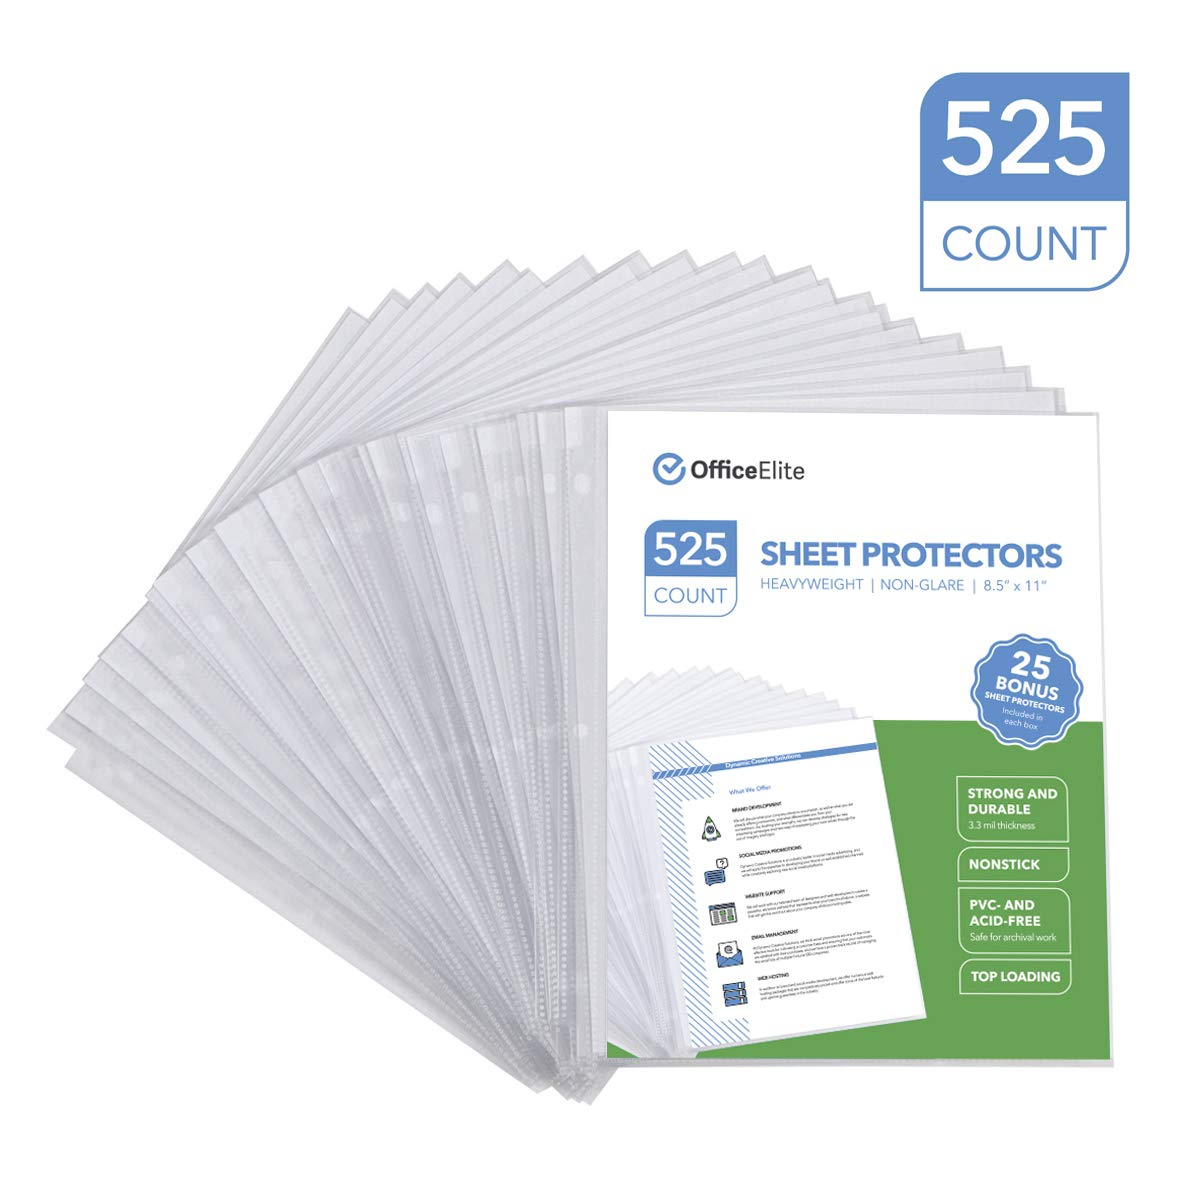 525 Non-Glare Heavyweight Sheet Protectors - 3.3 MIL Thickness - Reinforced 3 Hole Design - Protects Photos and 8.5'' x 11'' Documents - Top Loading - Archival Safe - PVC and Acid Free - Box of 525 by Office Elite